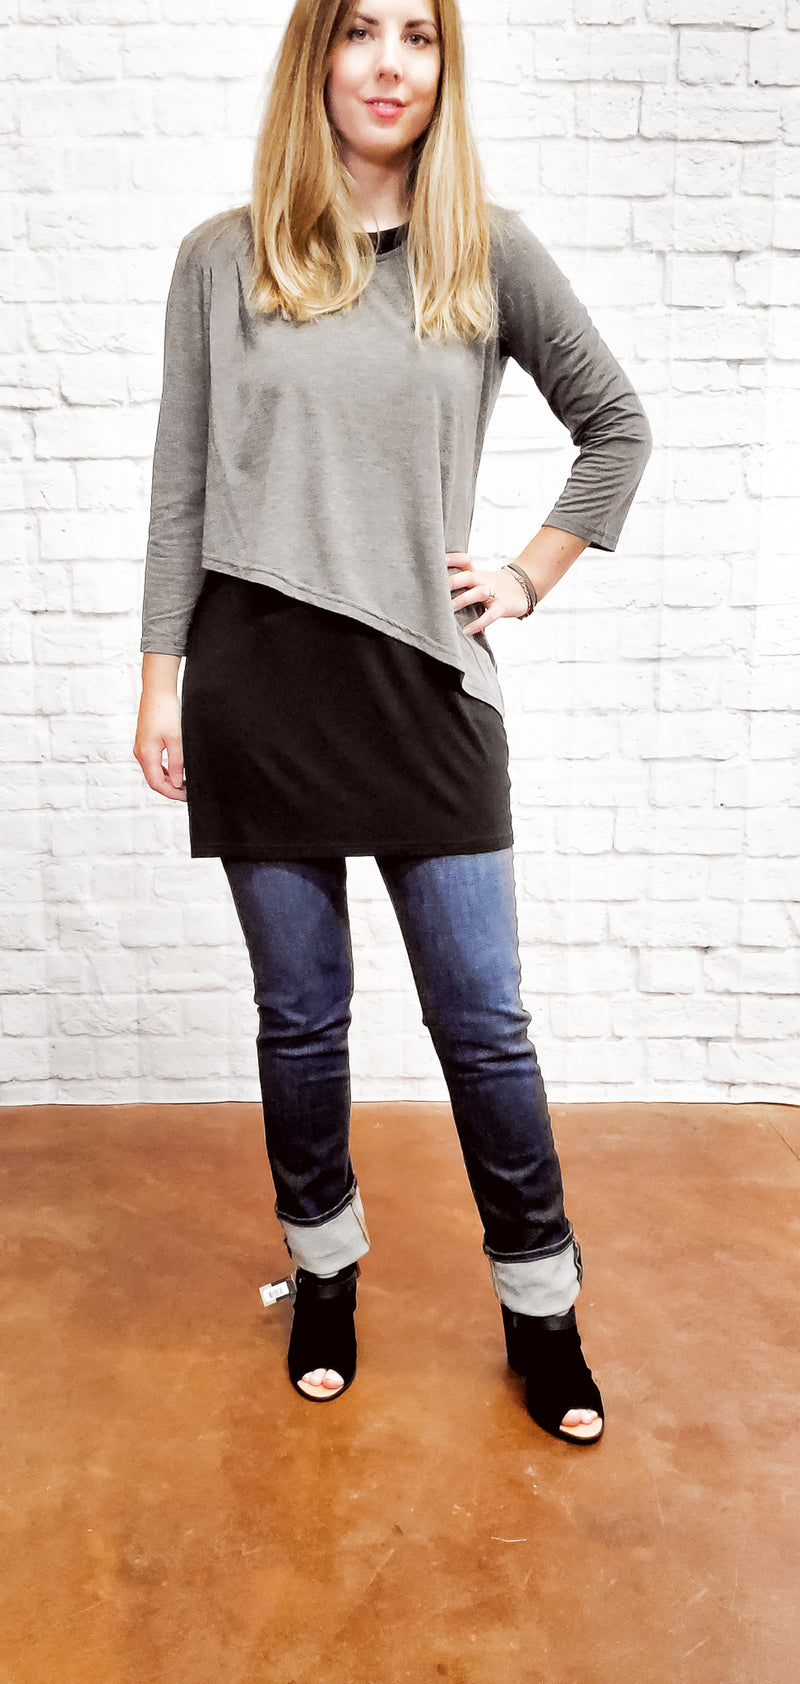 Carrie Layered Tunic Top